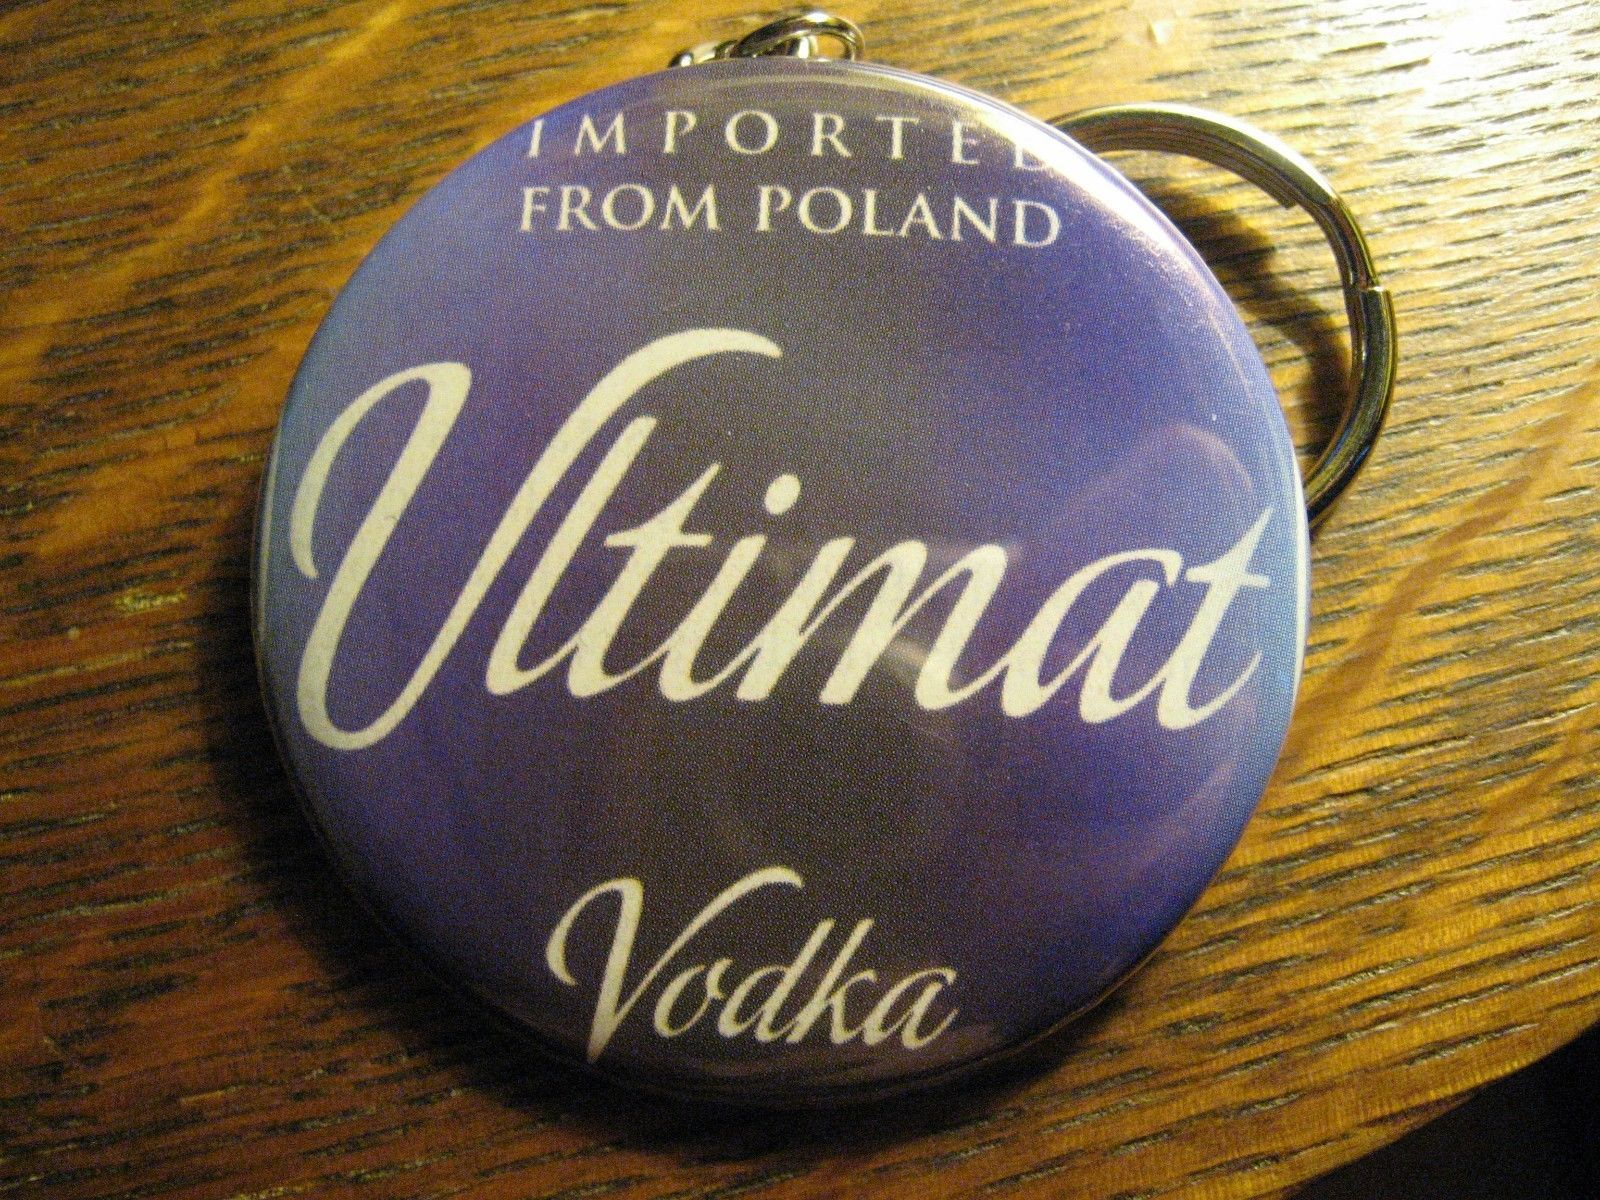 Ultimat Vodka Keychain - Repurposed Magazine Ad Backpack Purse Clip Ornament